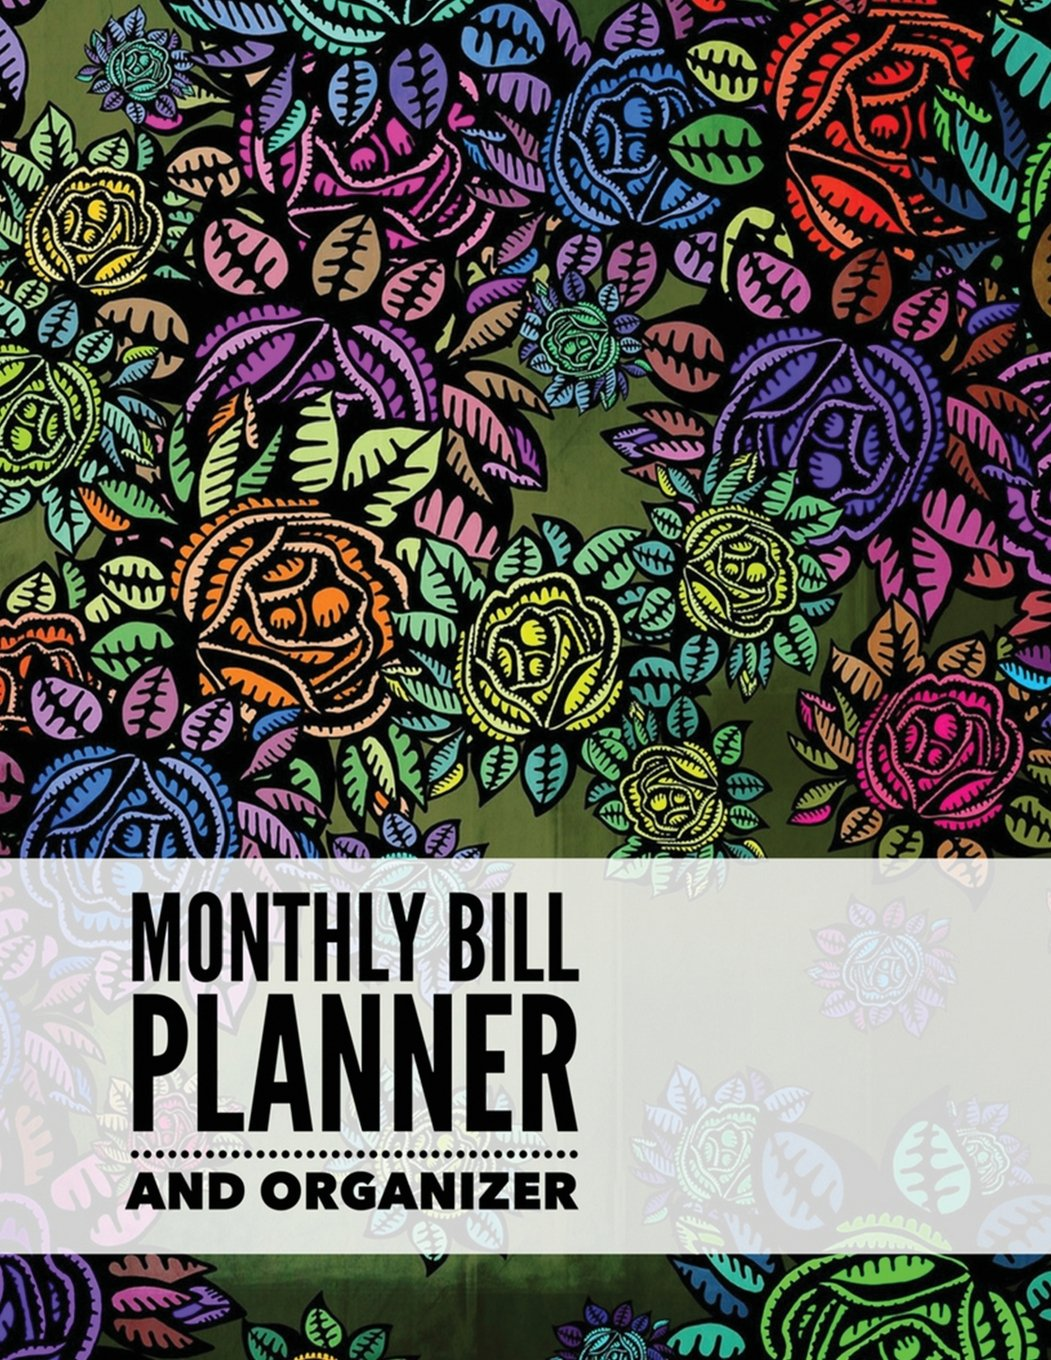 Read Online Monthly Bill Planner and Organizer: Colorful Floral Design With Calendar 2018-2019 Weekly Planner ,Bill Planning, Financial Planning Journal Expense ... (Monthly Bill Planner Organizer) (Volume 22) PDF